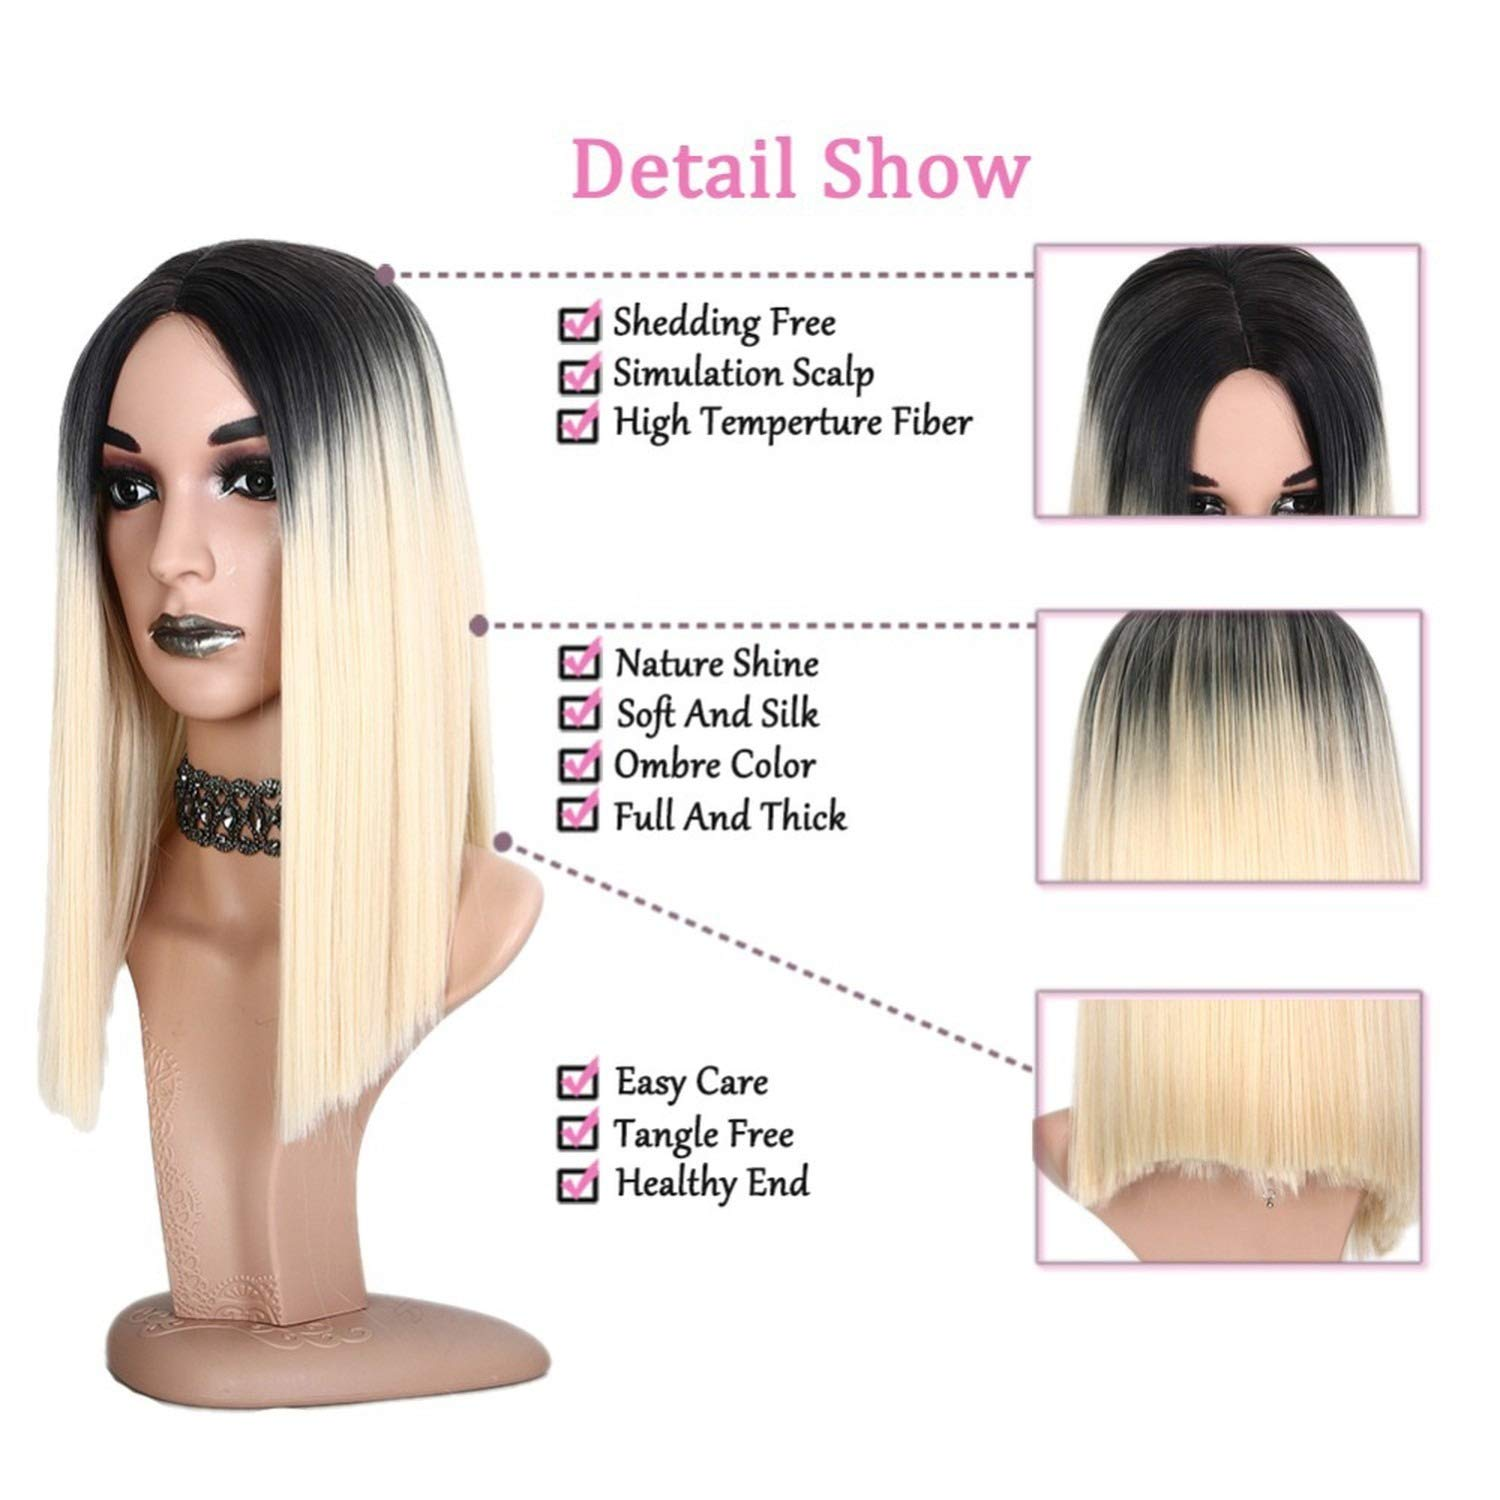 Amazon.com: Wig Straight Synthetic Wigs Short Hair Women High temperature Fiber Cosplay hair,1,14inches: Beauty